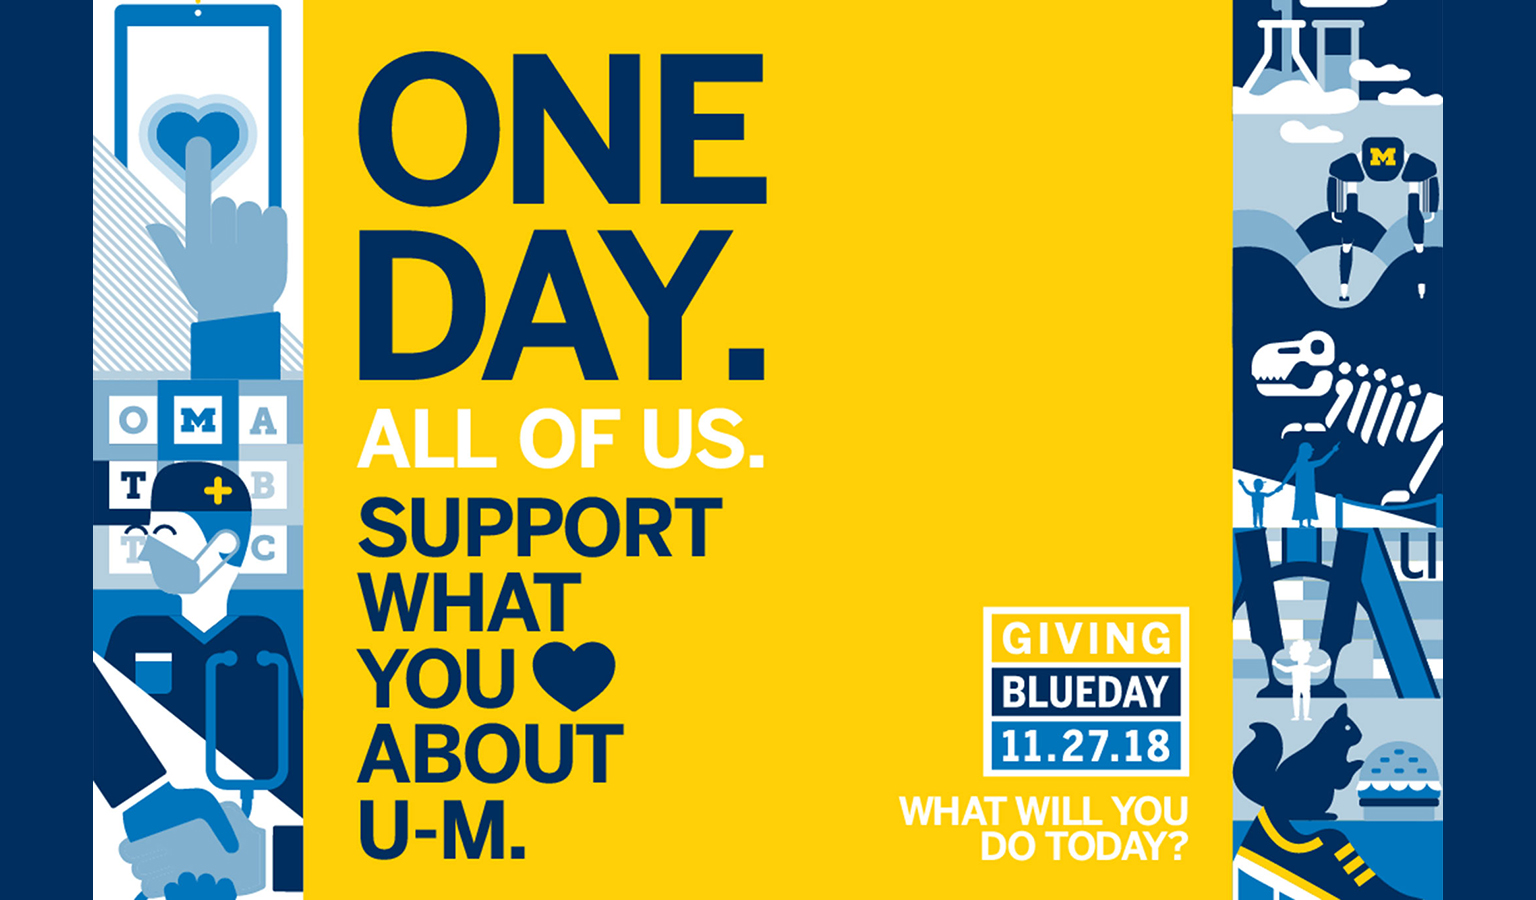 One Day. All of Us. Support What You Love About U-M